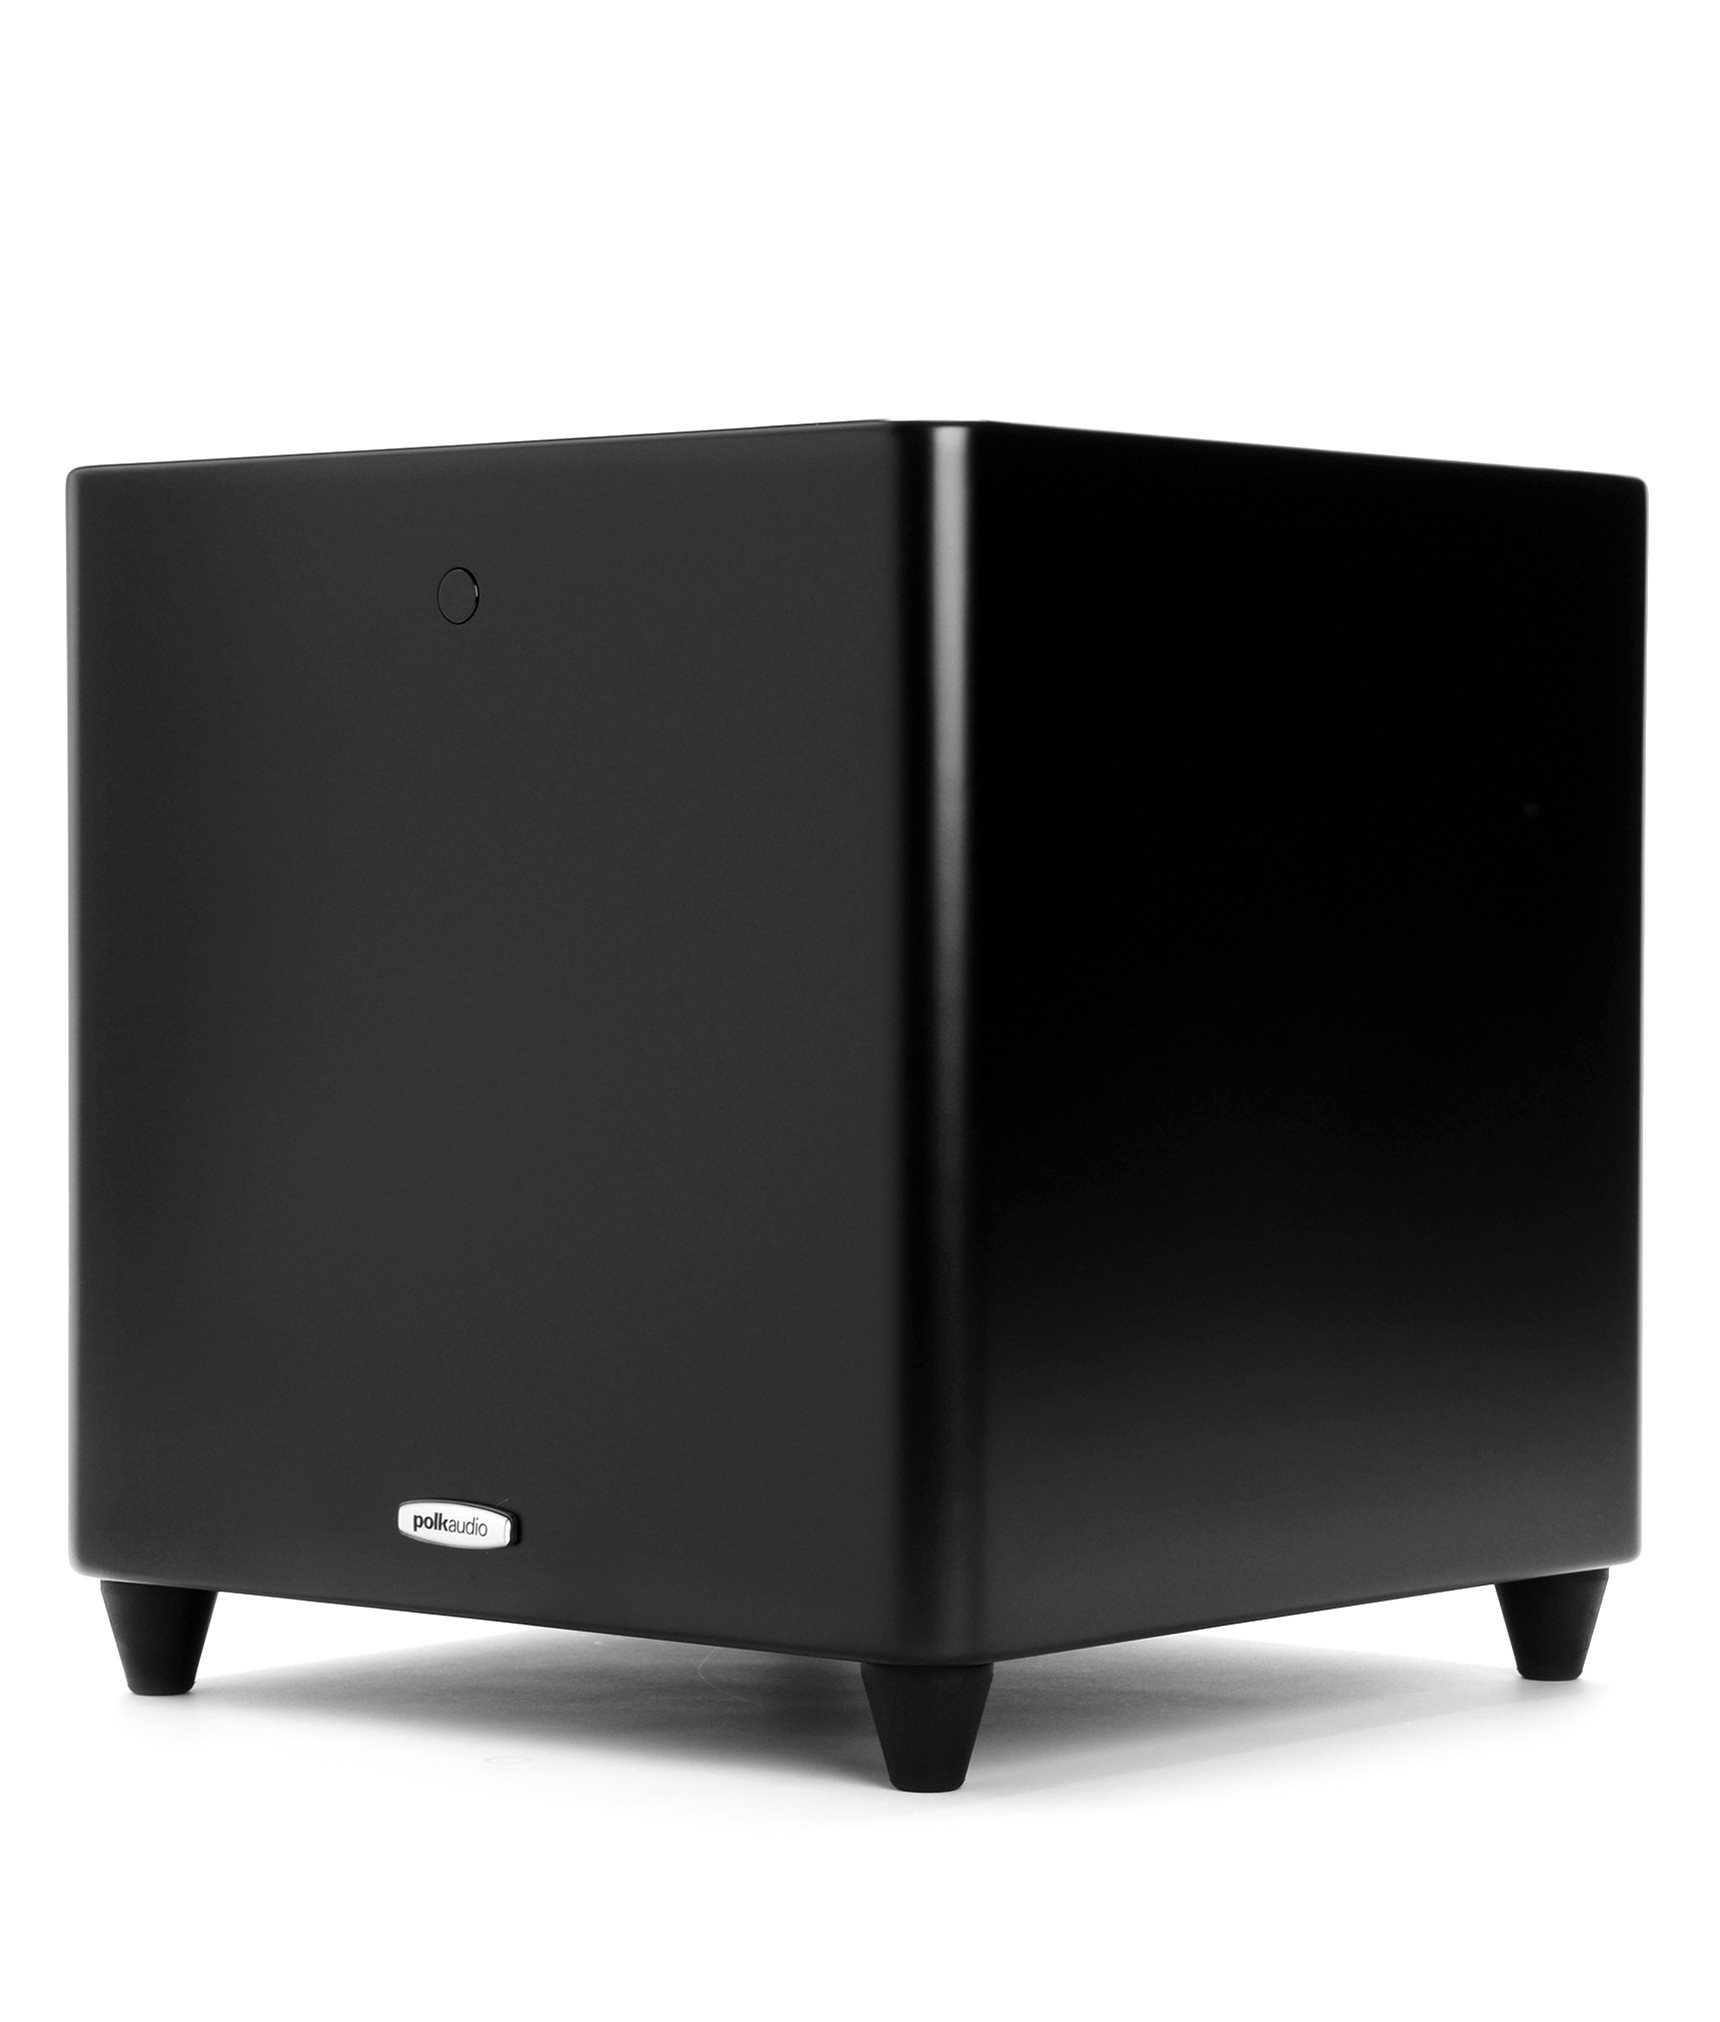 "Polk Audio DSW PRO 660 wi 12"" High Performance Subwoofer by Polk Audio"